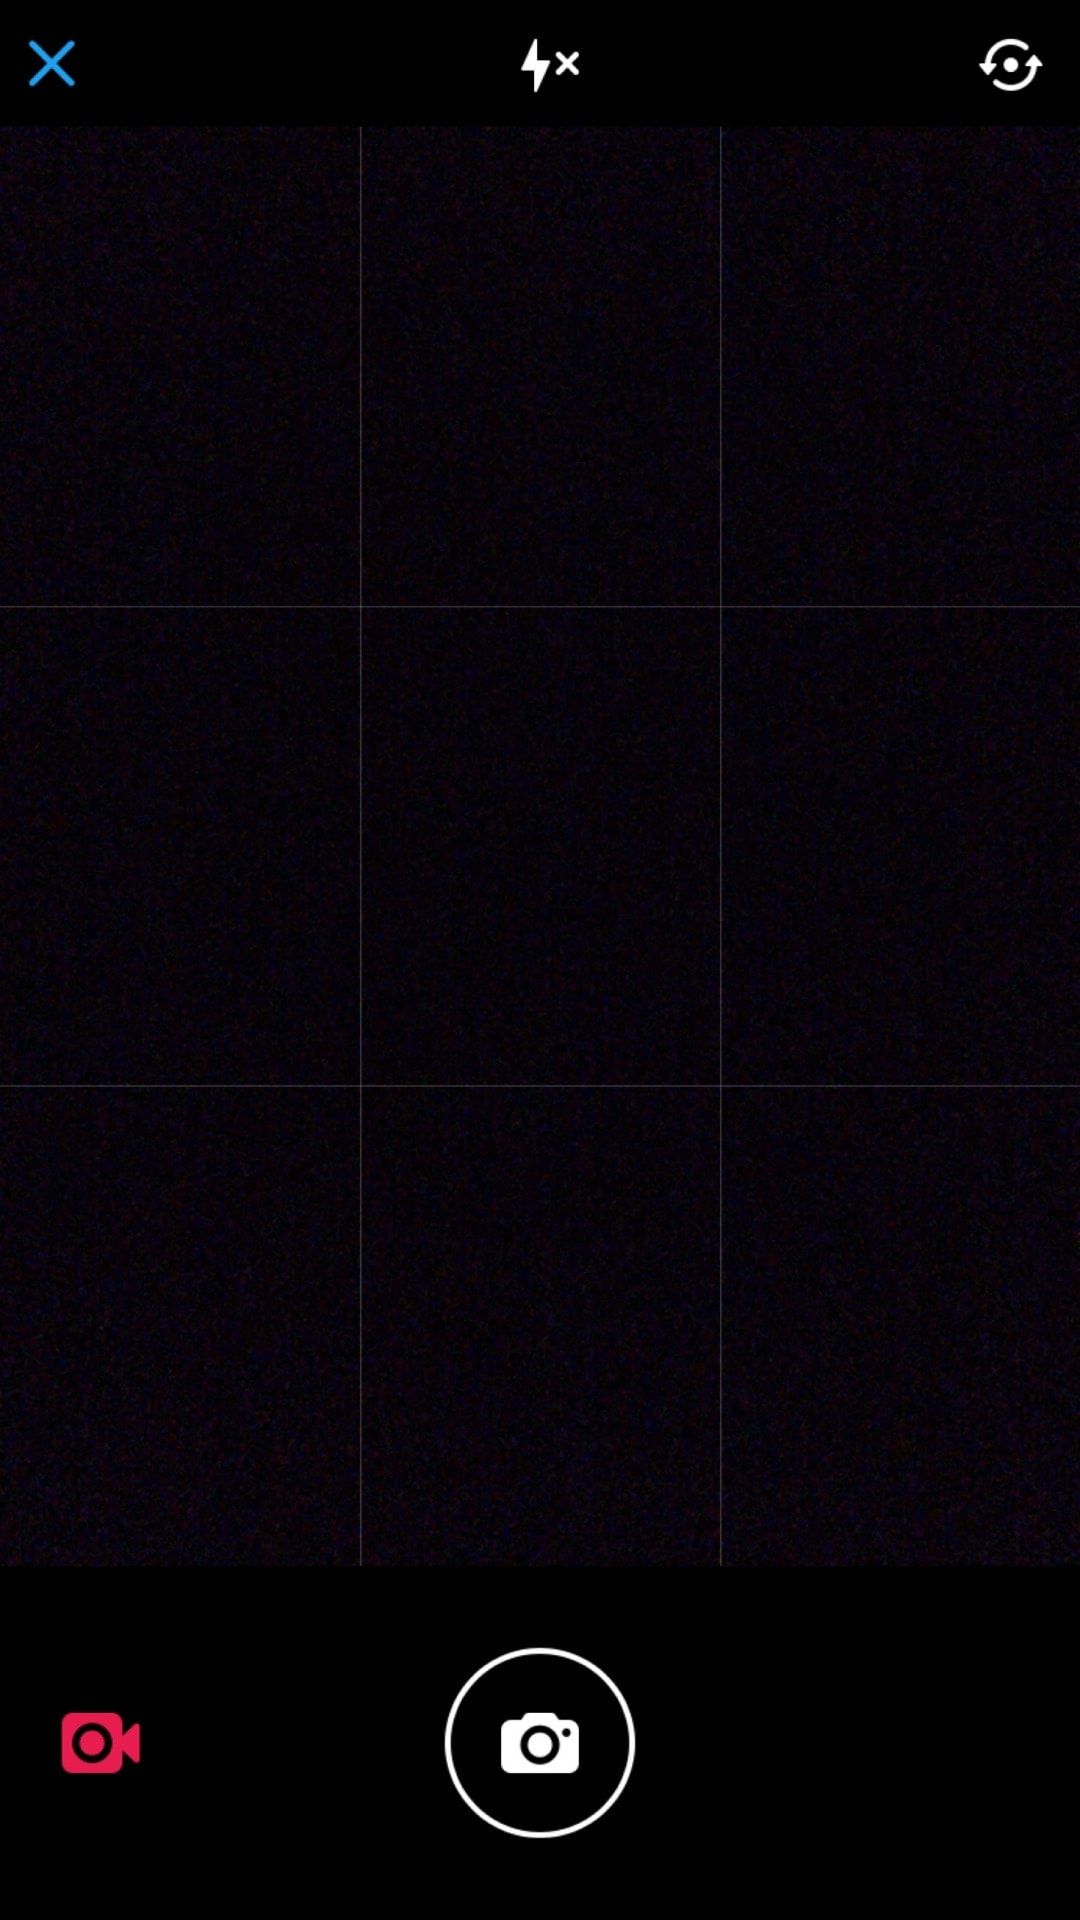 Camera view on iOS by Twitter from UIGarage